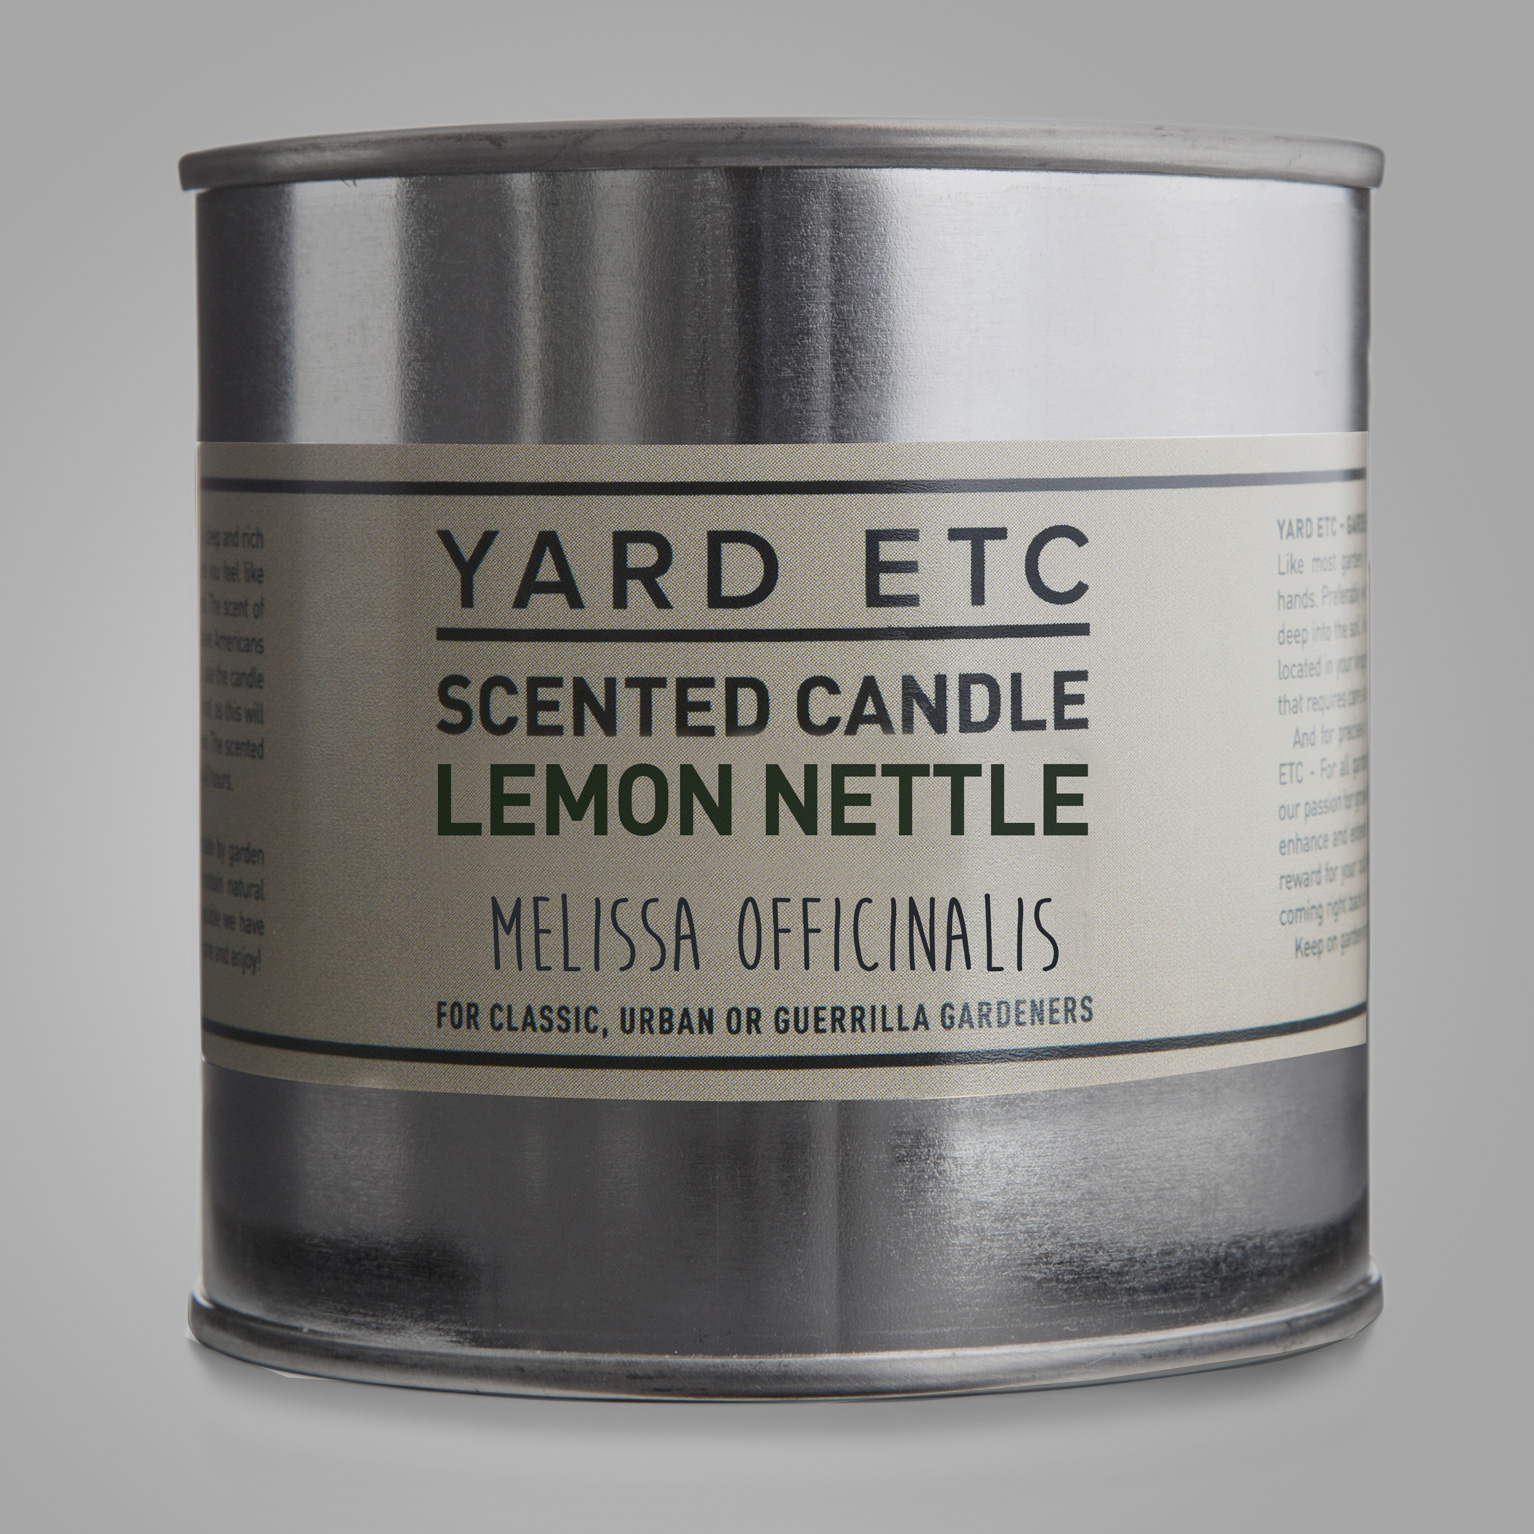 Yard Etc Scented Candle